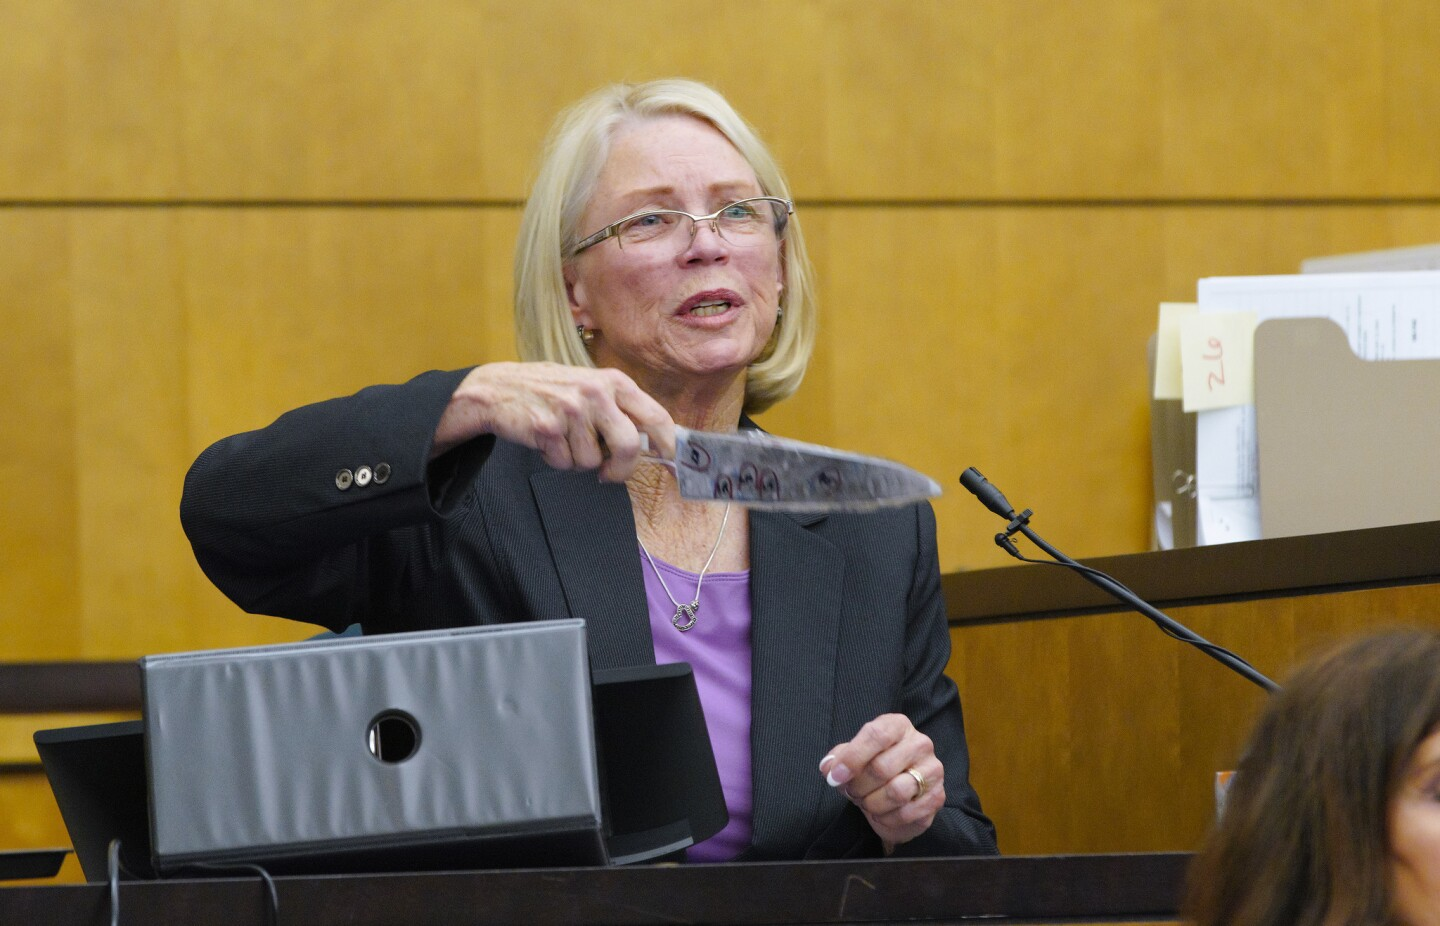 During redirect of her testimony, Denys Williams a former forensic evidence technician holds a replica of the knife that was found at the Coronado residence of where Rebecca Zahau's body was found.